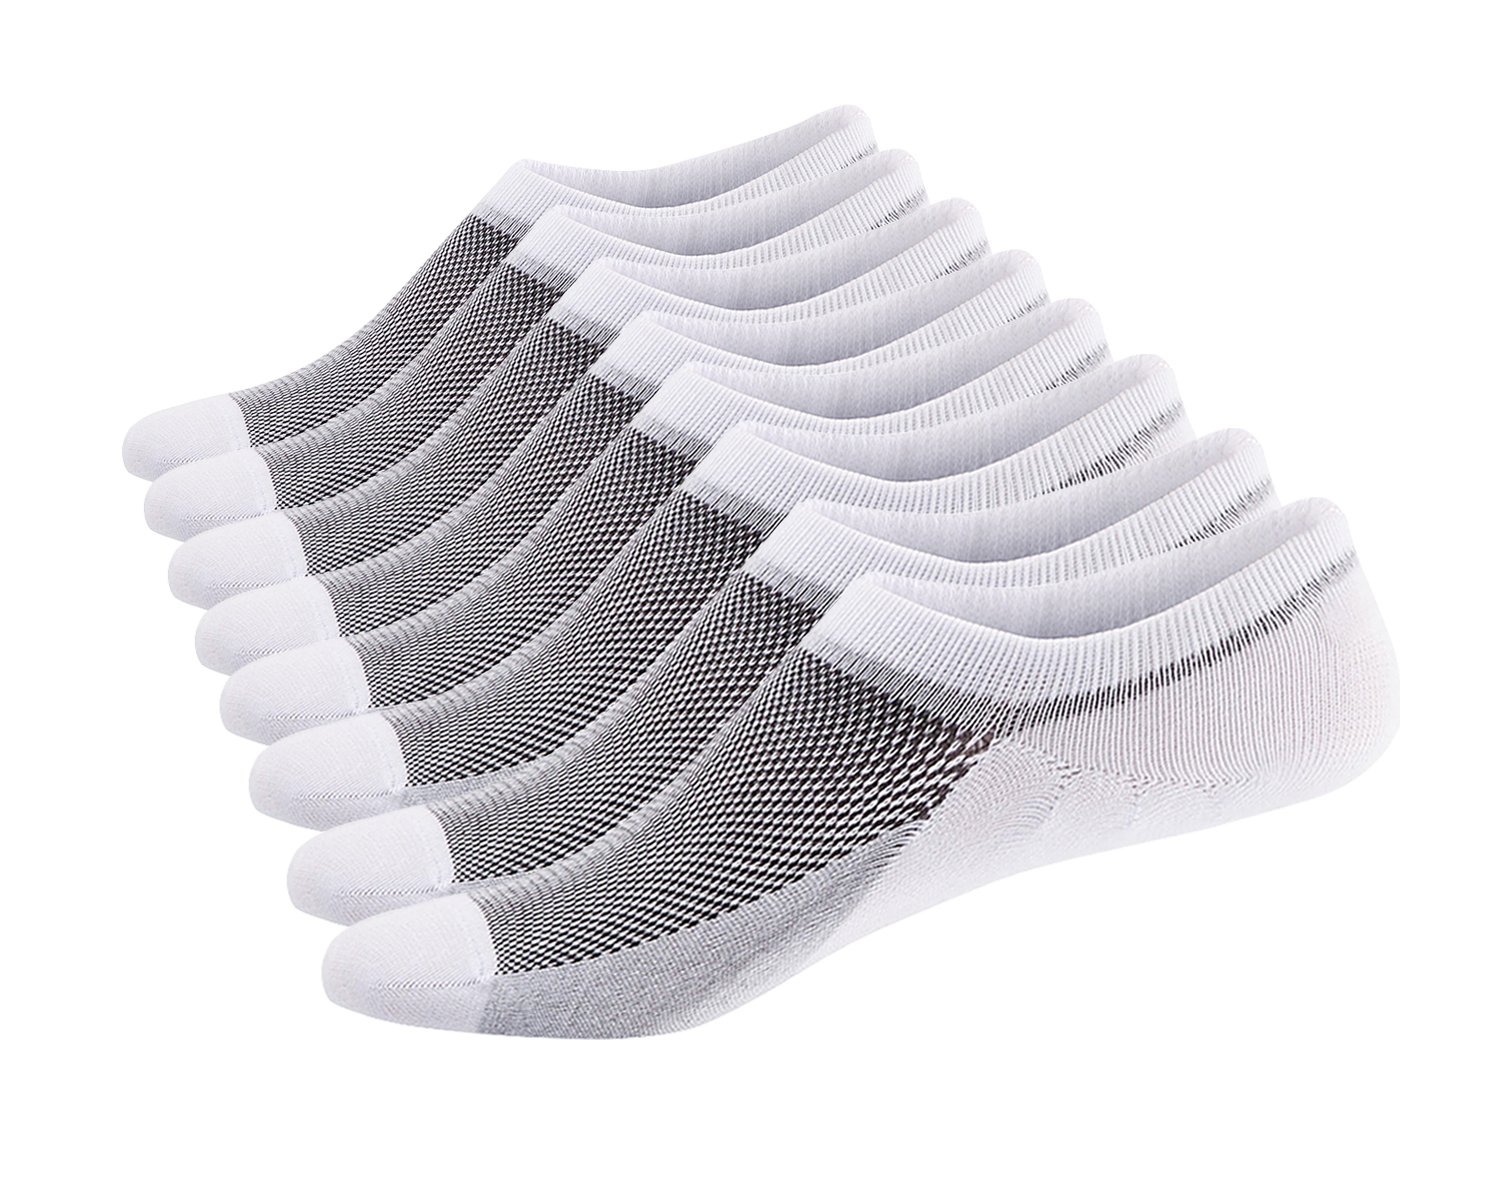 SIXDAYSOX Men's No Show Socks Cotton Non Slip Low Cut Invisible Socks Mesh Knit 6-11 Pack of 8 White by SIXDAYSOX